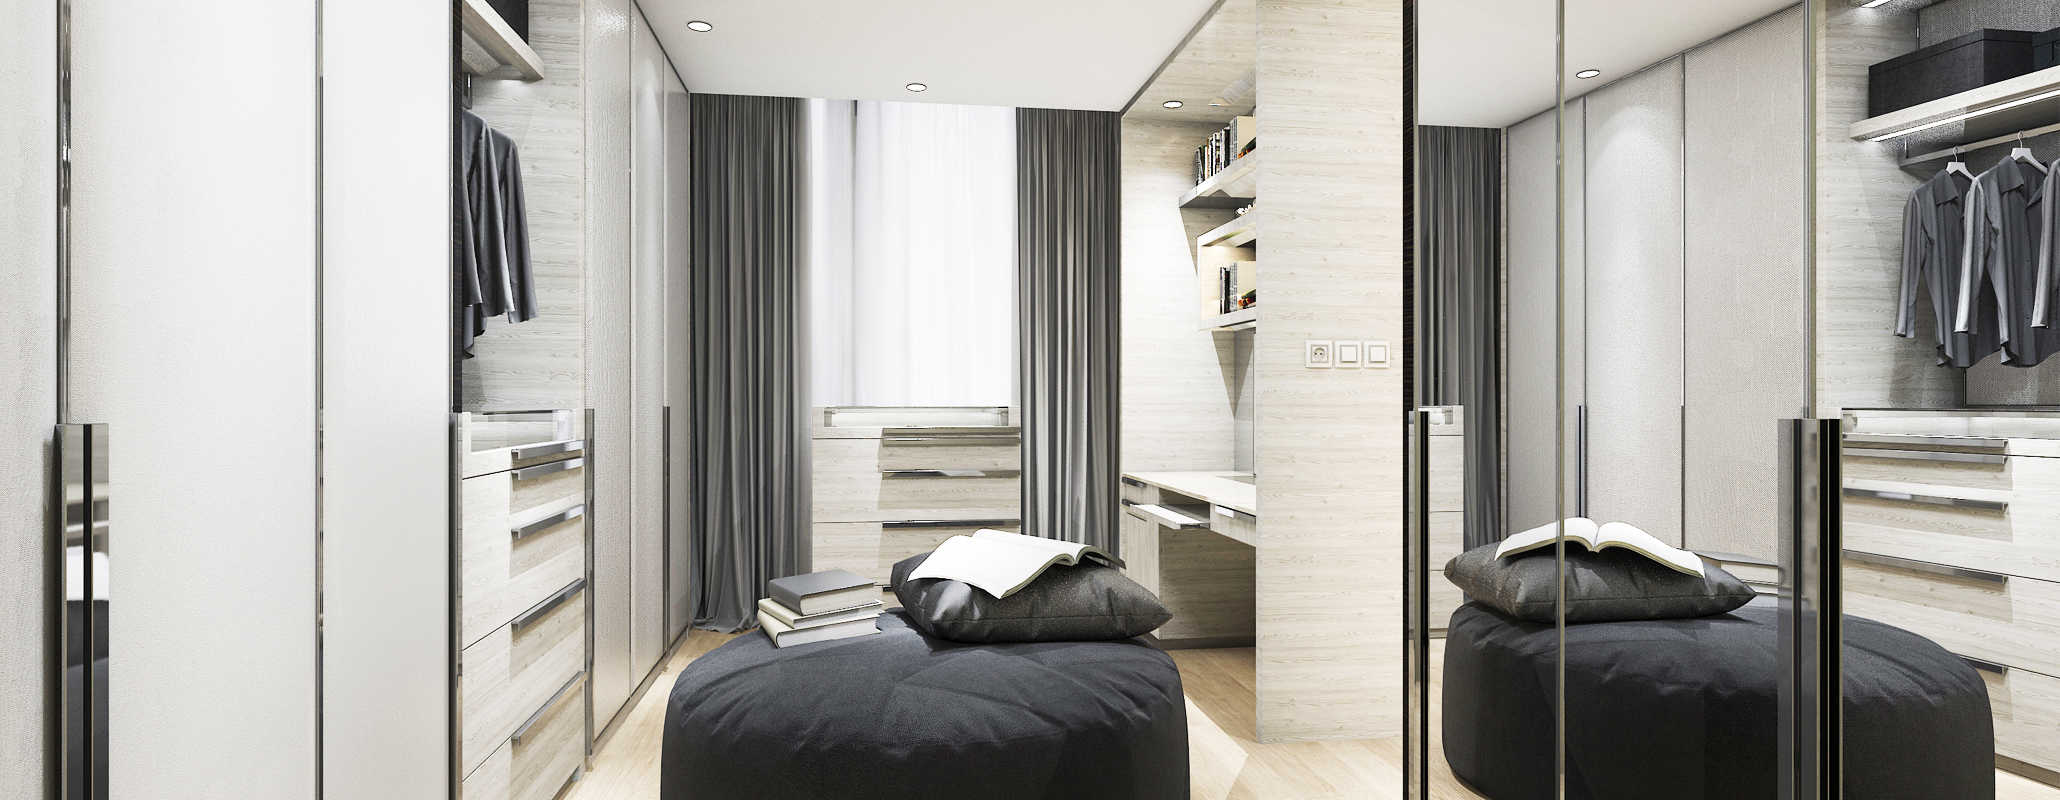 Walk in closet with a chair in the middle of the room and a window on the far wall. Cabinets, handing racks and Aldora custom mirror closet doors cover the other walls.